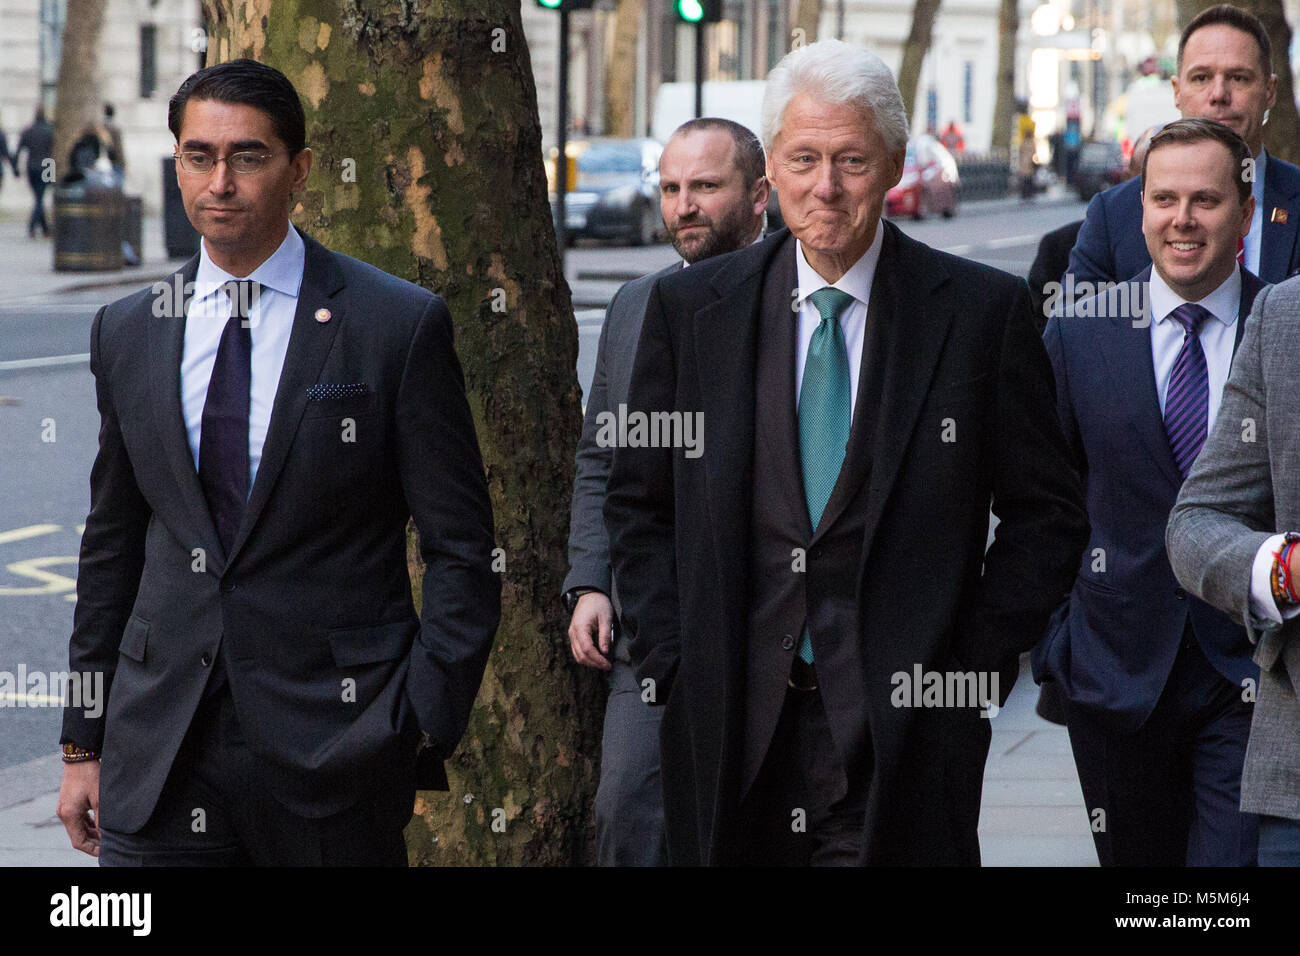 London, UK. 24th February, 2018. Bill Clinton, former President of the United States, arrives to deliver a keynote - Stock Image